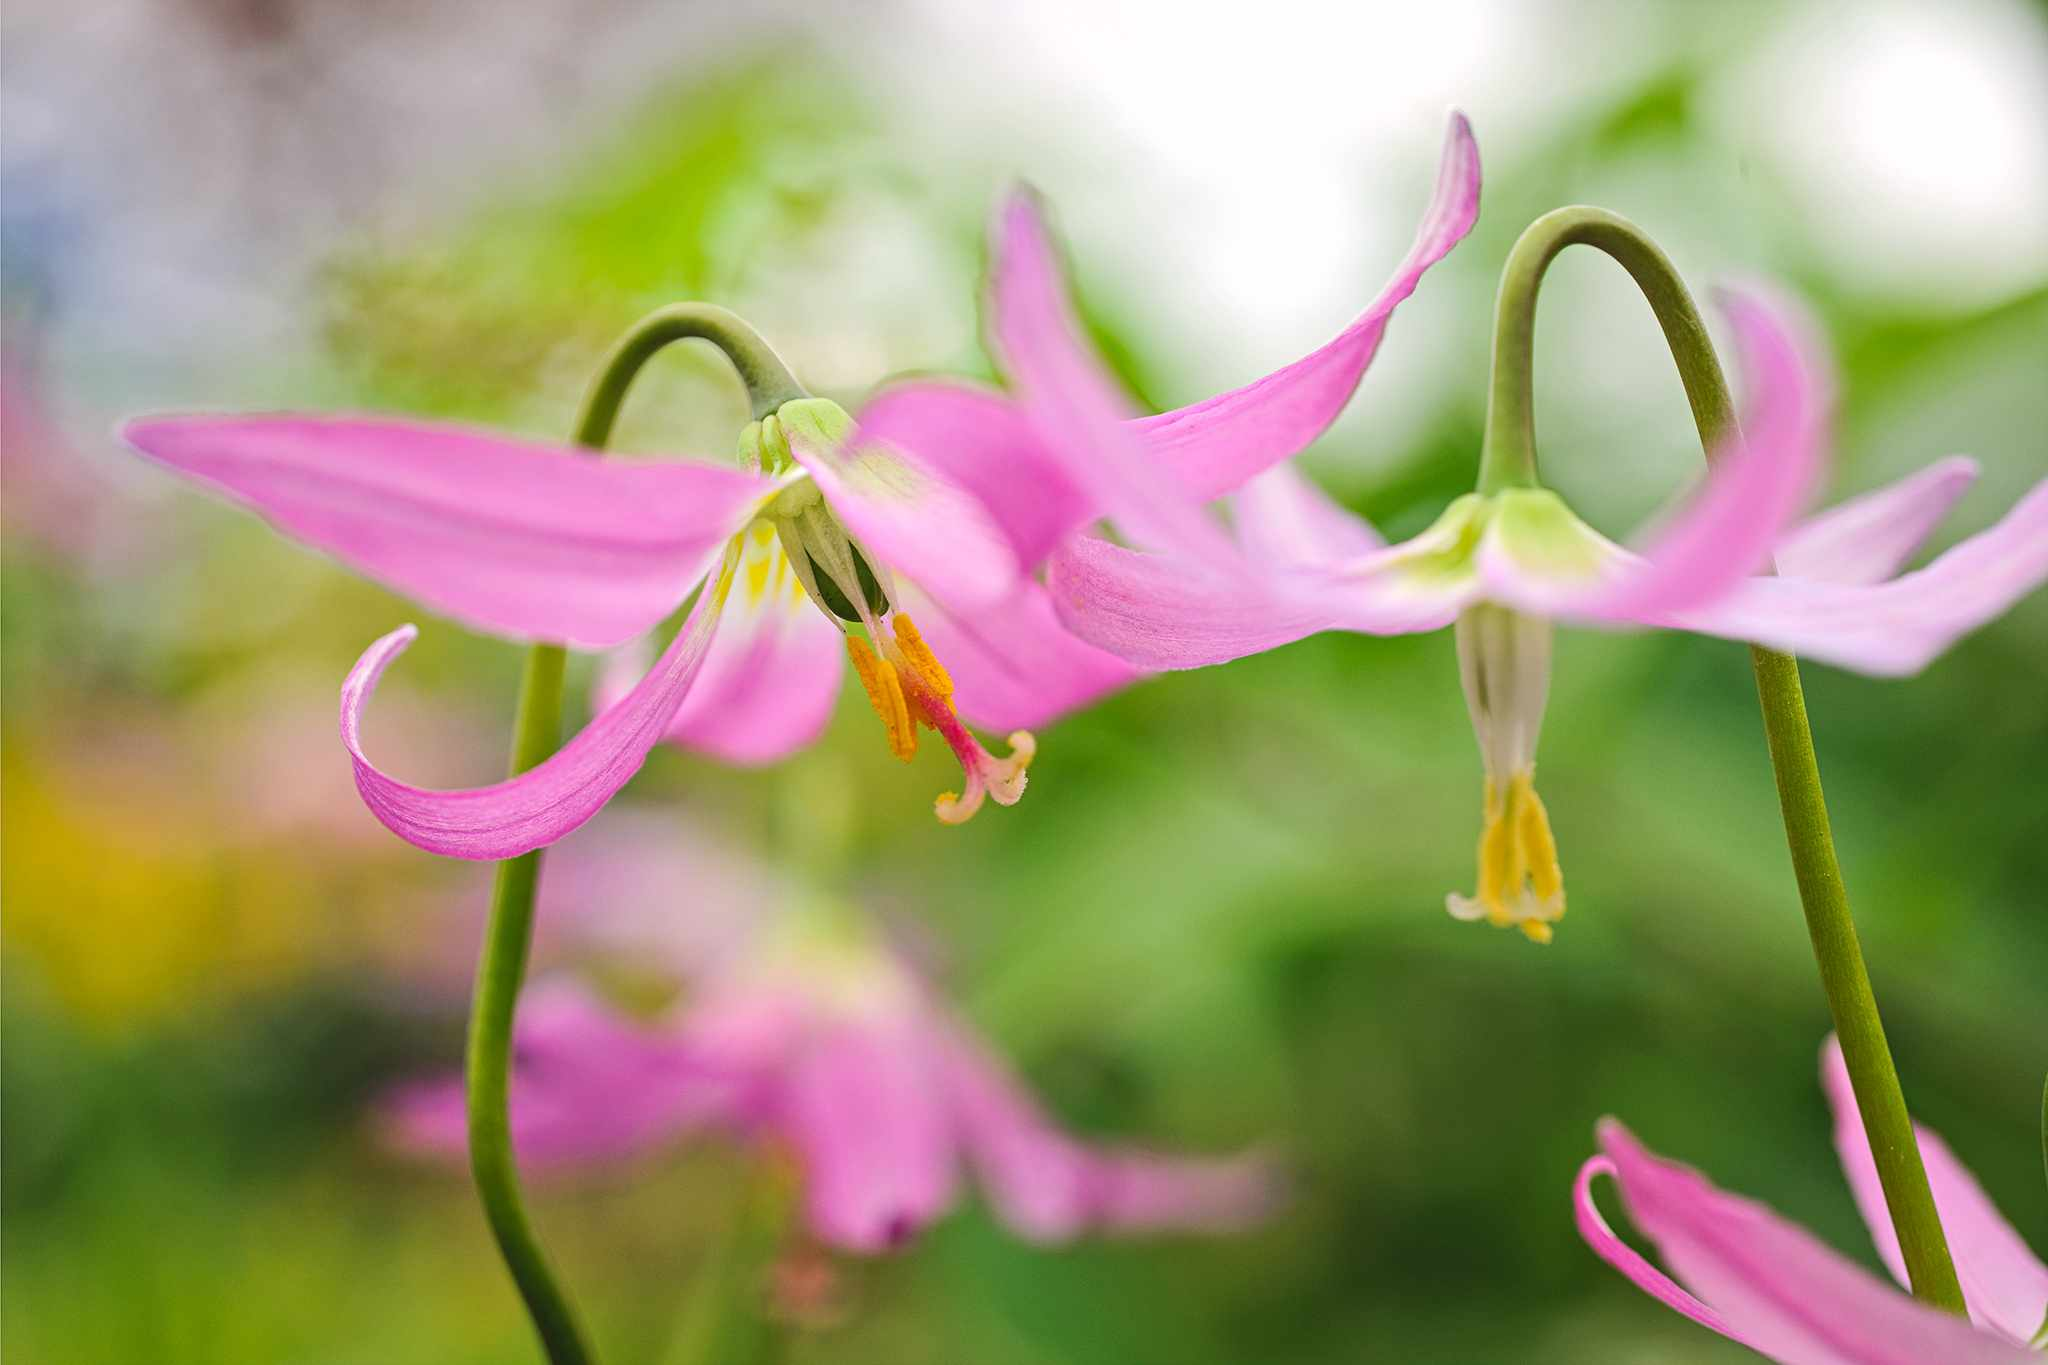 Pink flowers of dog's tooth violet